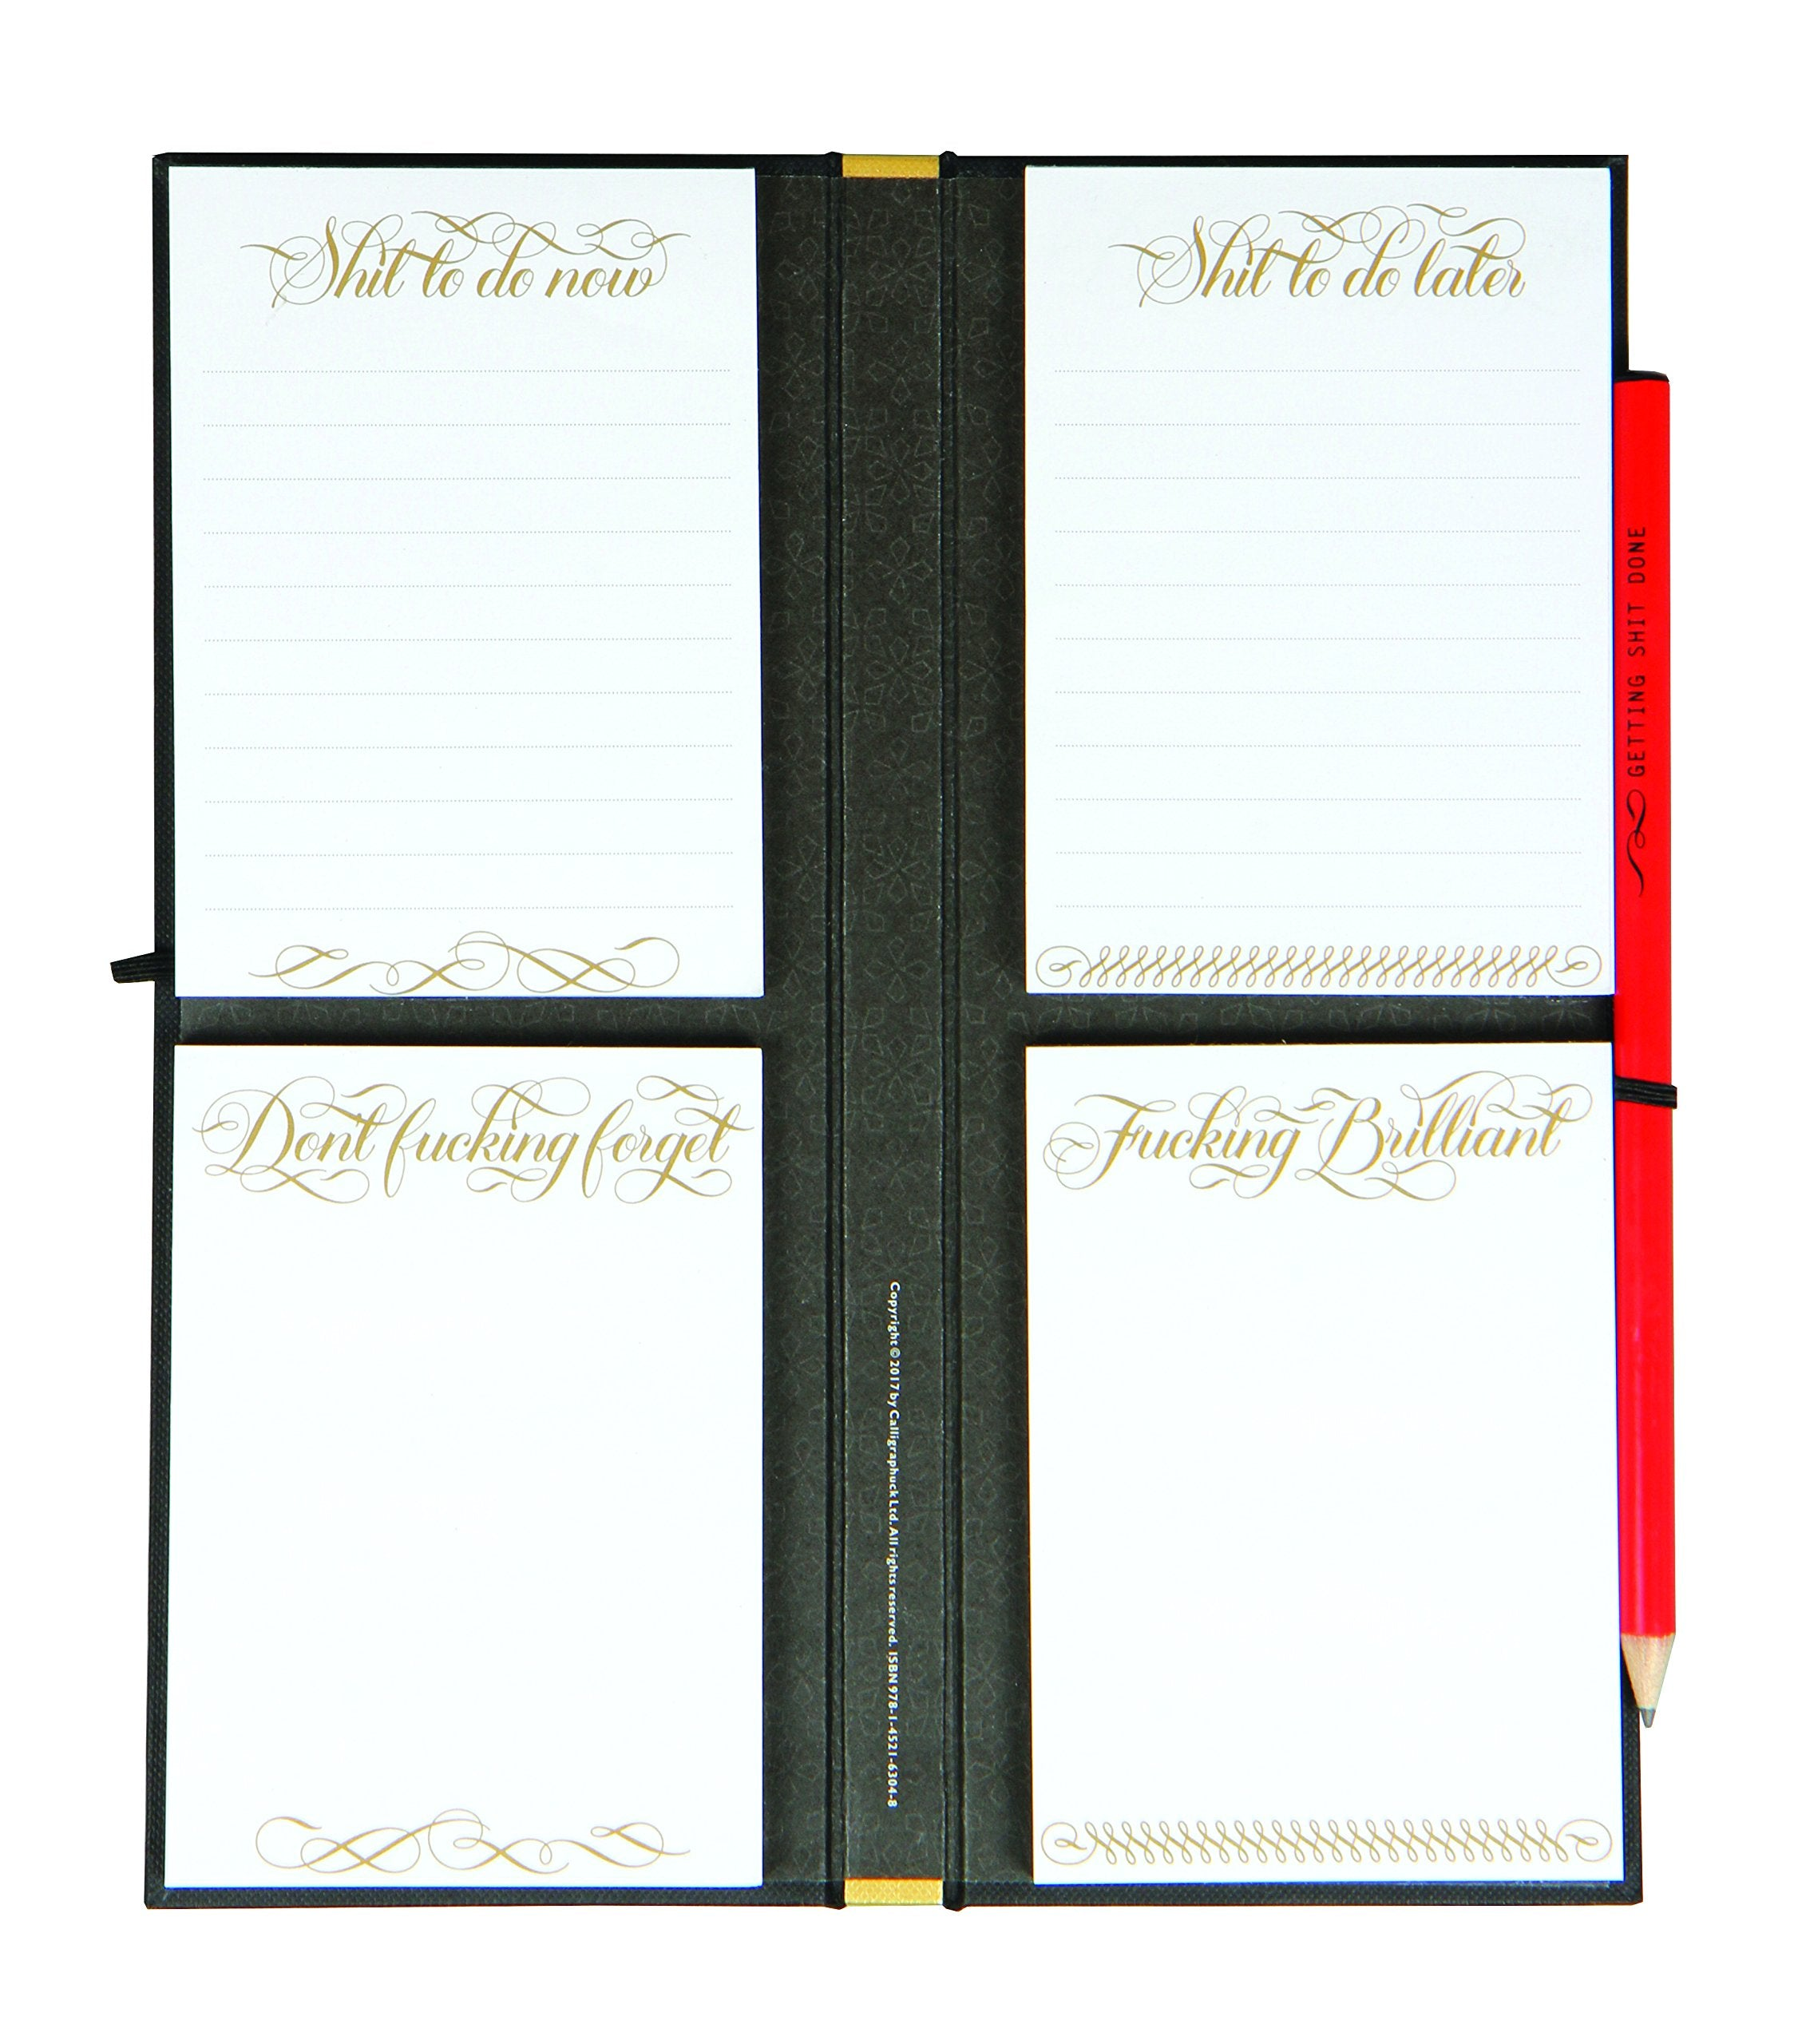 Calligraphuck's Getting Shit Done List Ledger